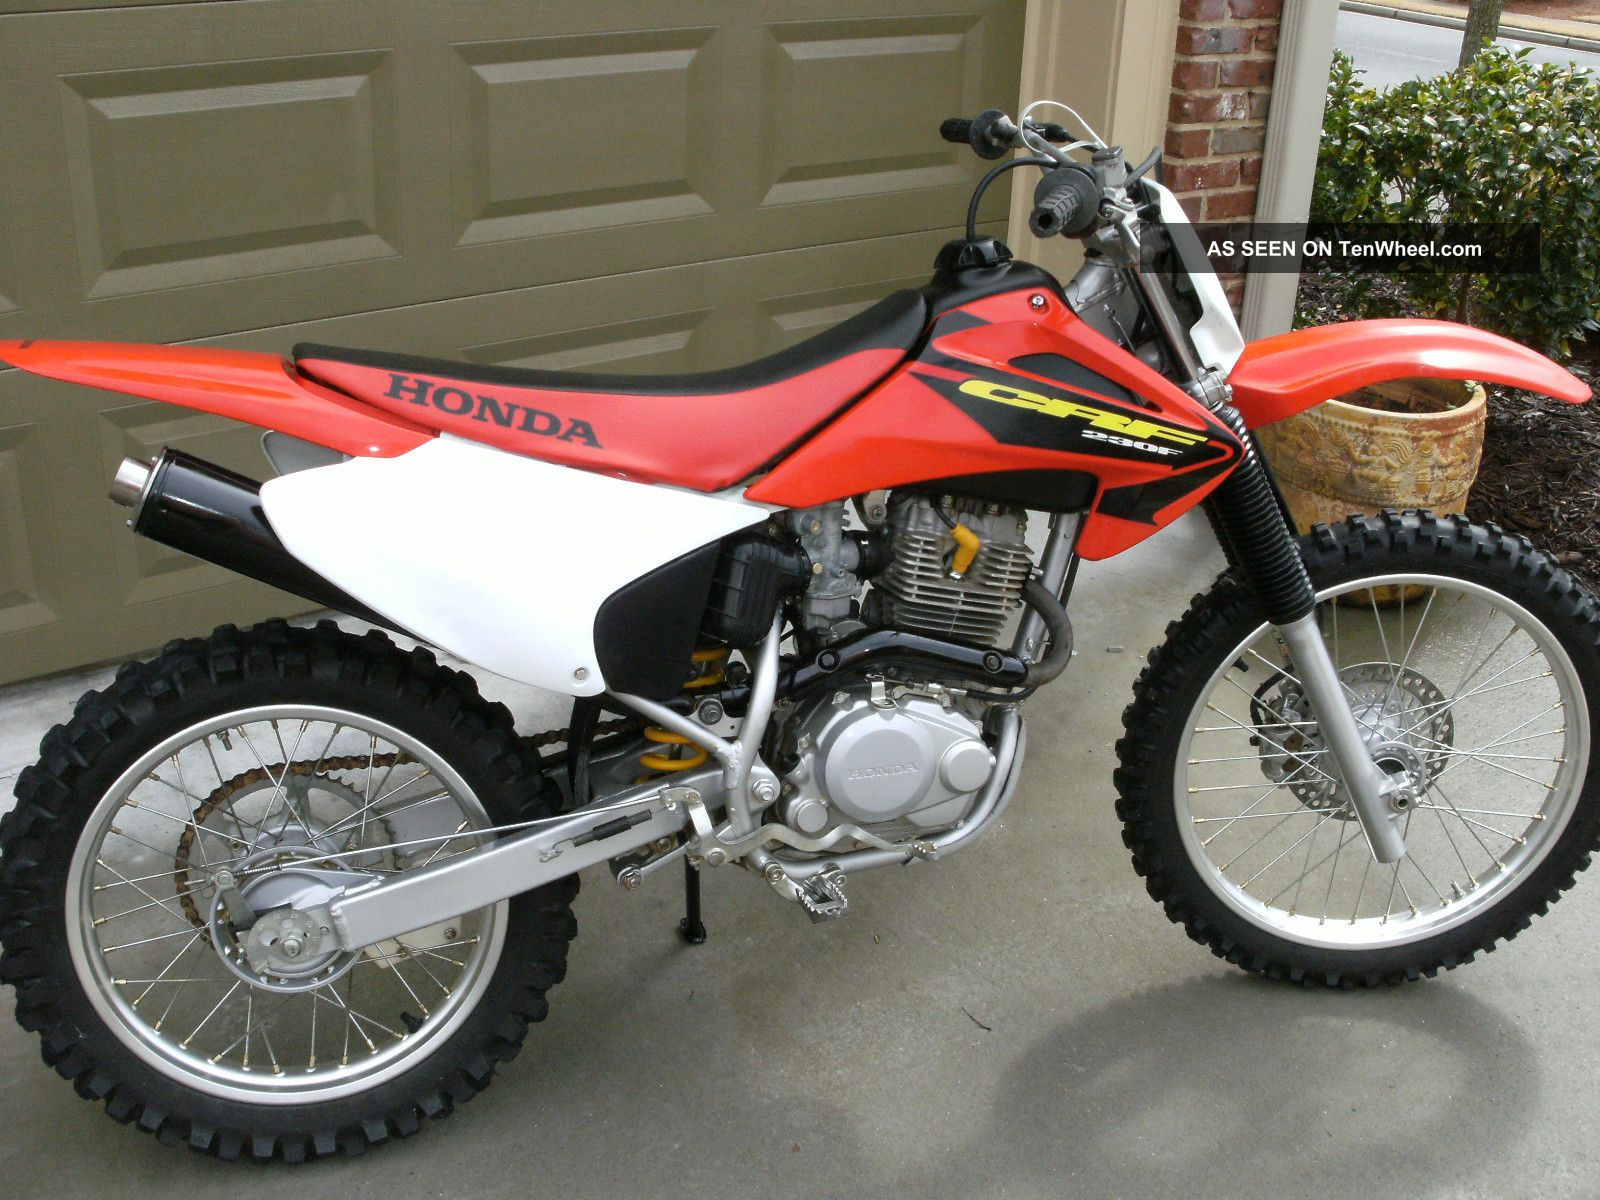 Honda crf230f photo - 3